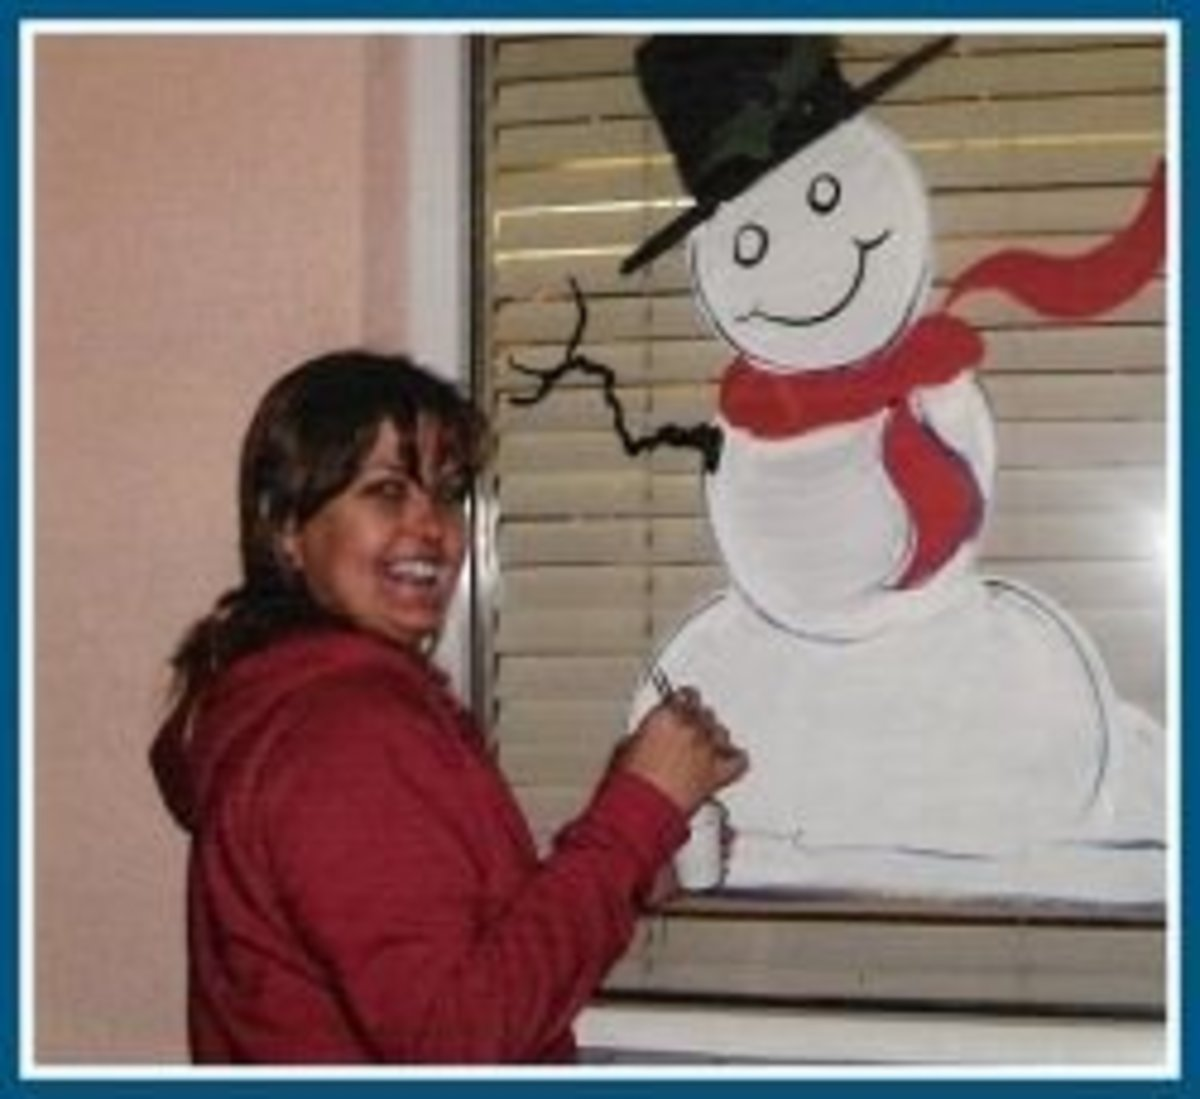 Painting a snowman.